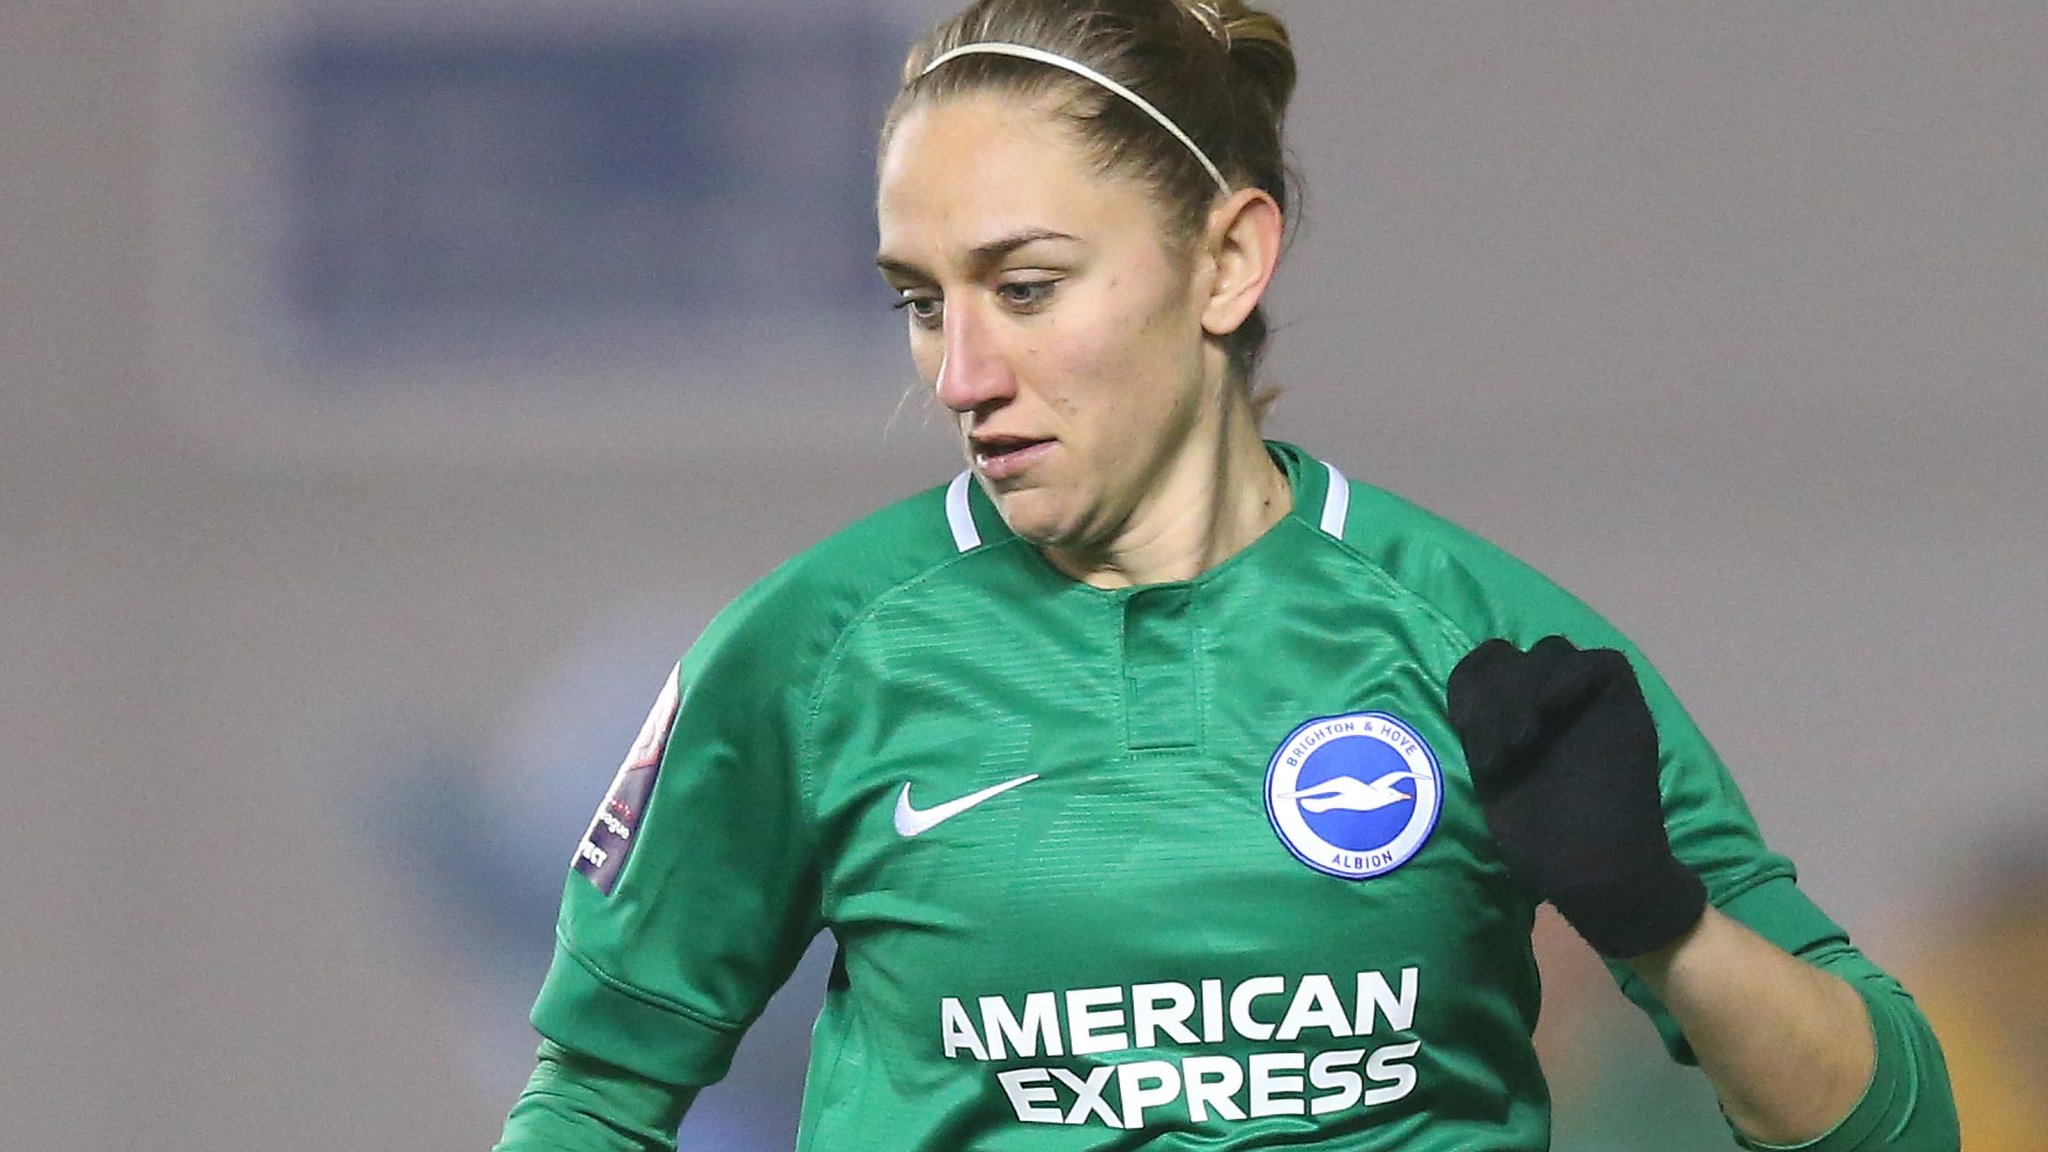 Brighton & Hove Albion Women 0-0 Everton Ladies: Aileen Whelan comes closest for Brighton